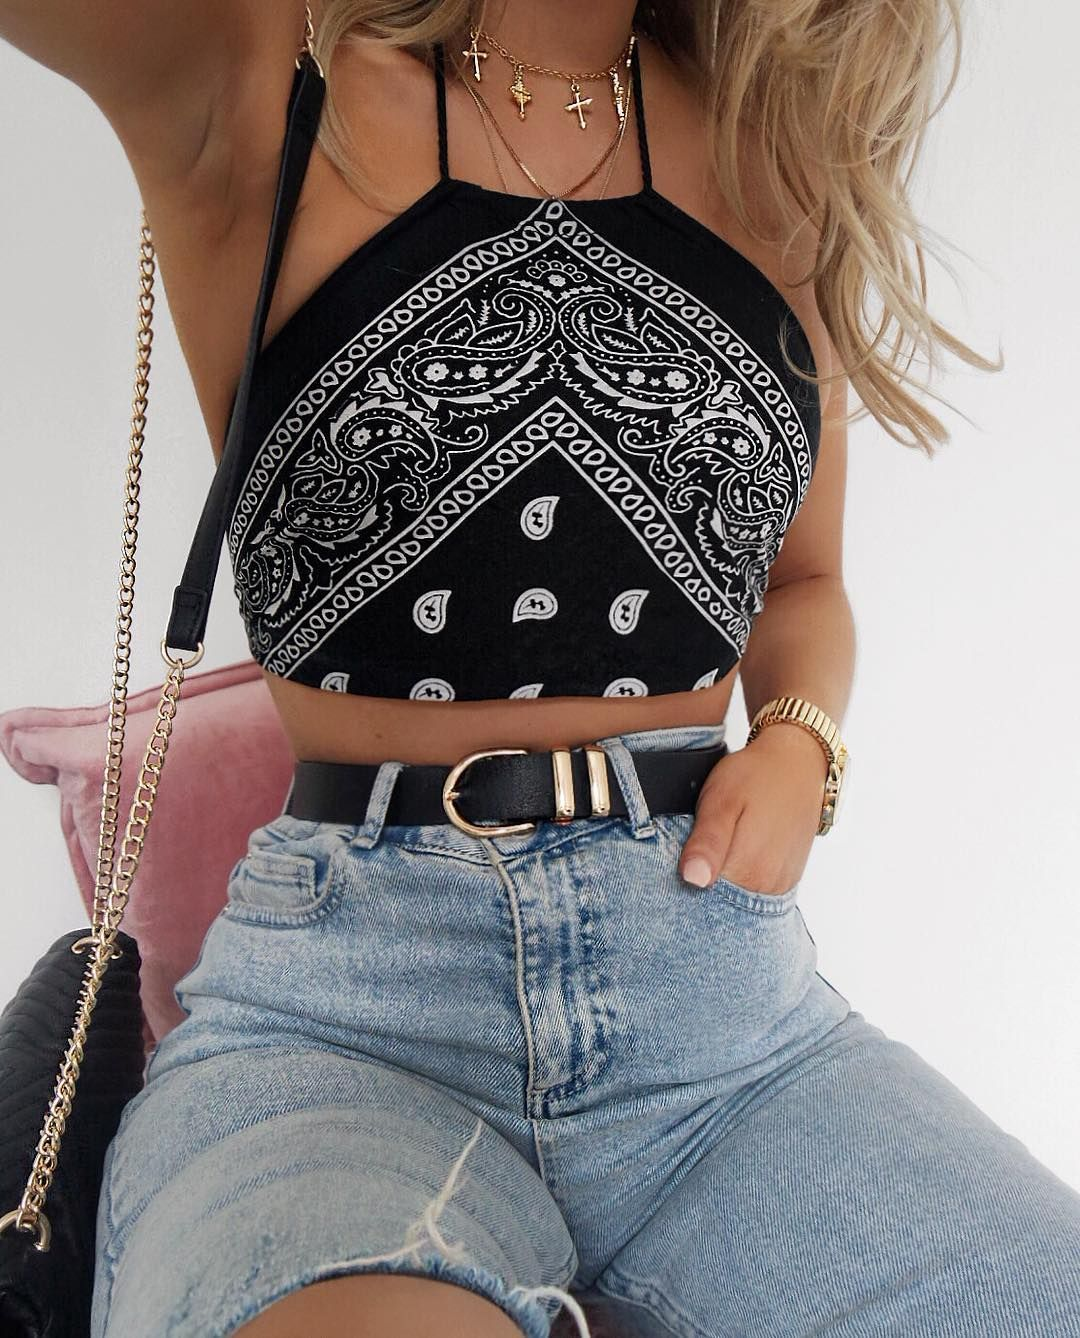 4c676093c34d Cute crop tops are a summer staple, and the weather is almost warm enough  to wear them again! To spruce up your wardrobe, here are 10 cute crop tops  you ...